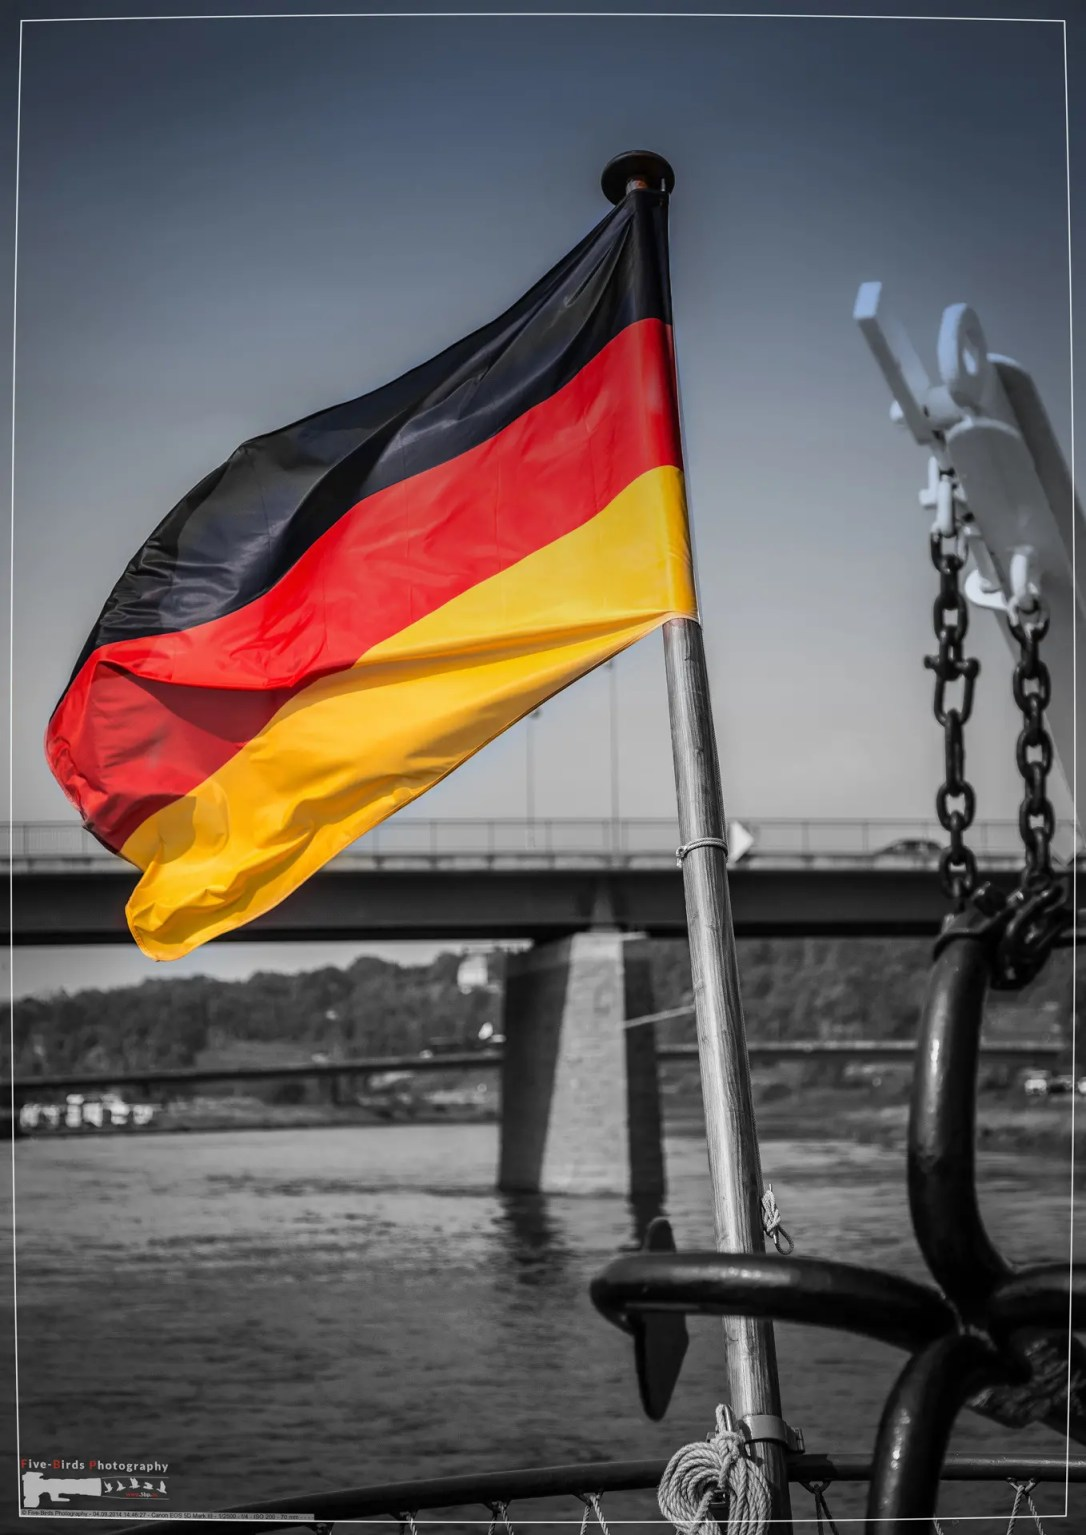 German national flag waving at the stern of a ship on the River Elbe